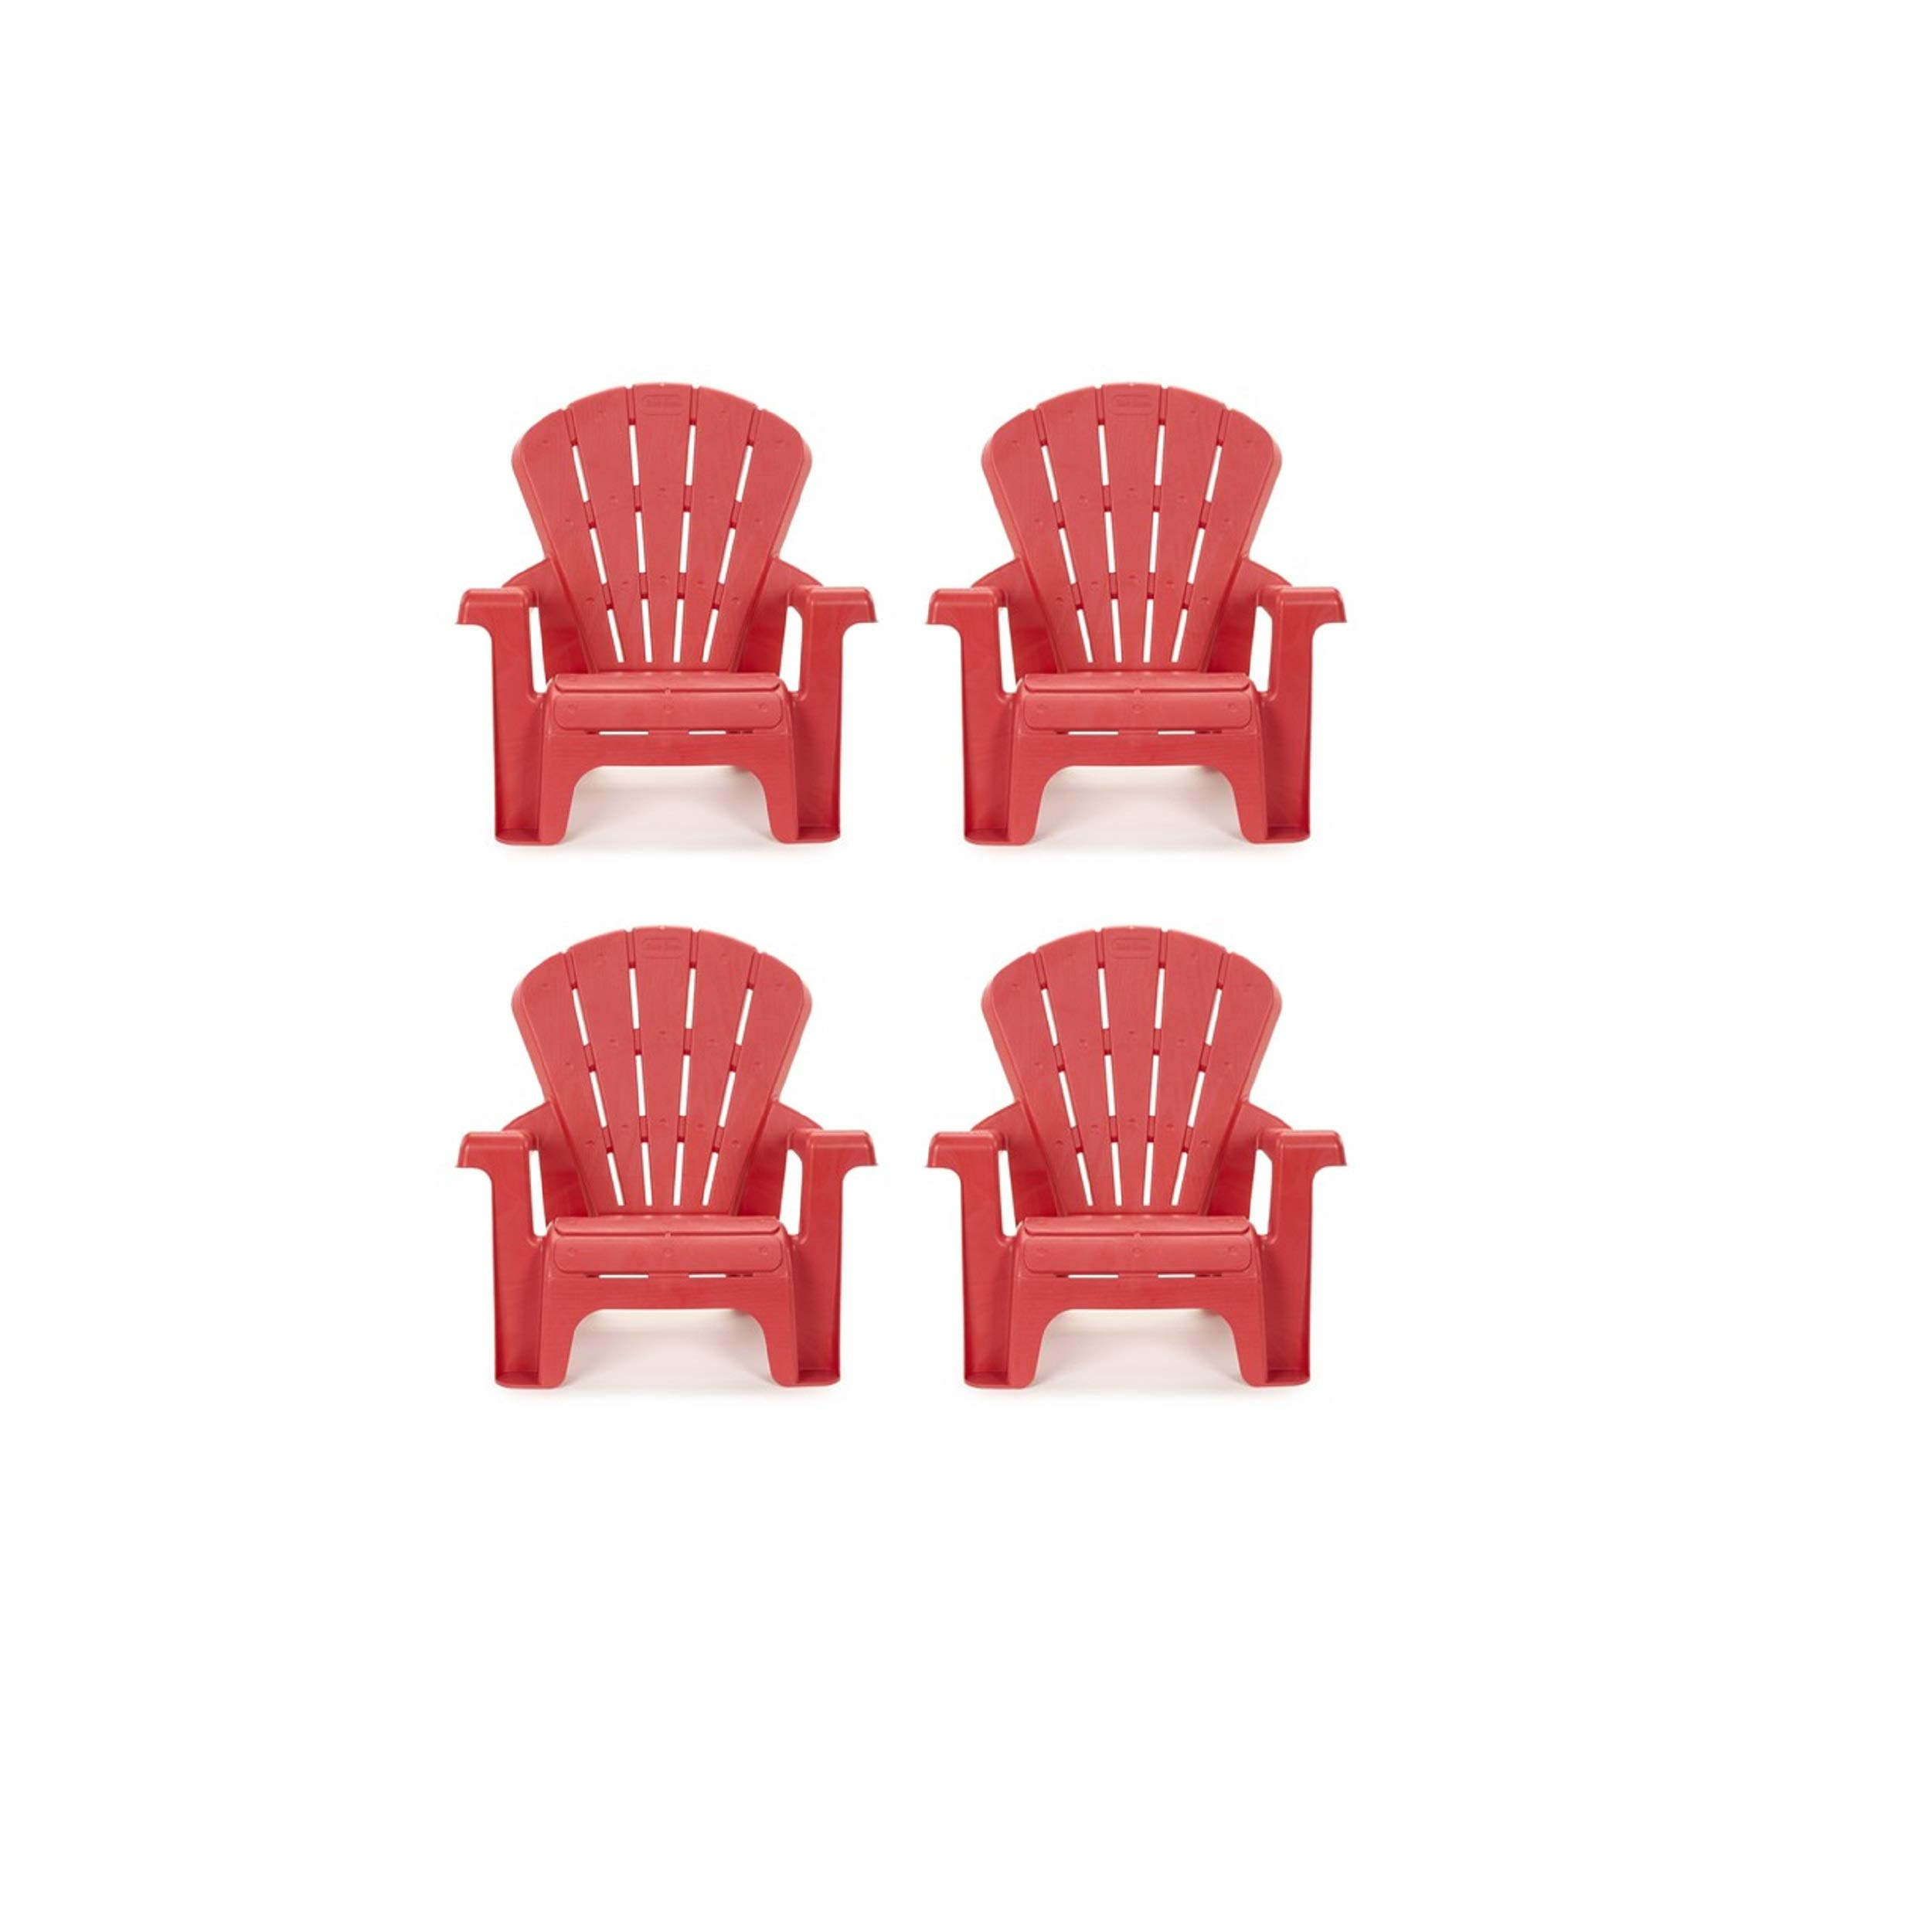 Little Tikes Garden Chair (4 Pack), Red by Little Tikes